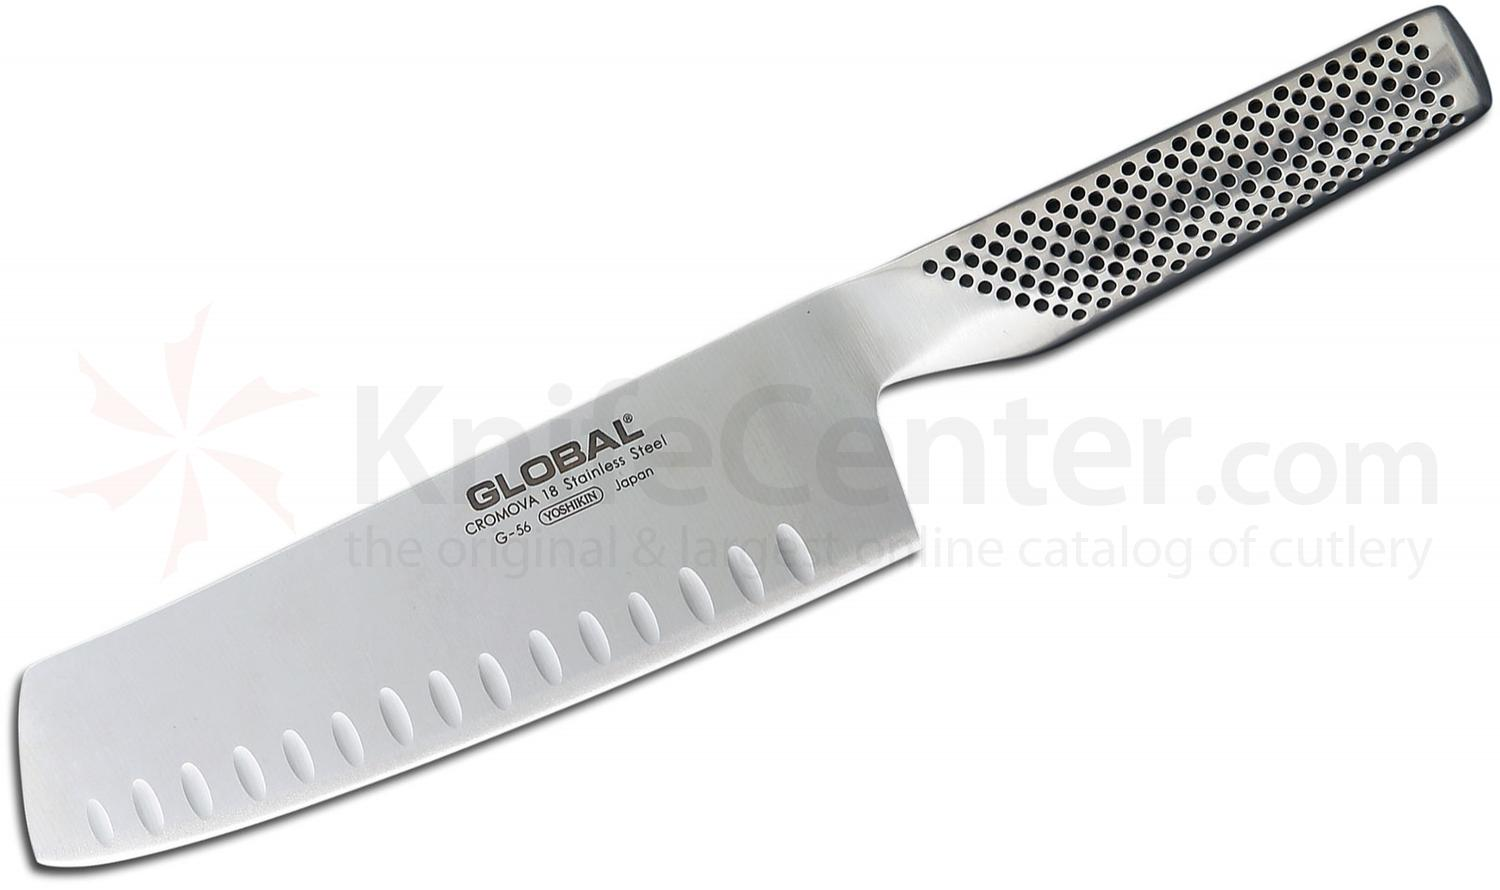 Global G-56 Kitchen 7 inch Granton Vegetable Knife